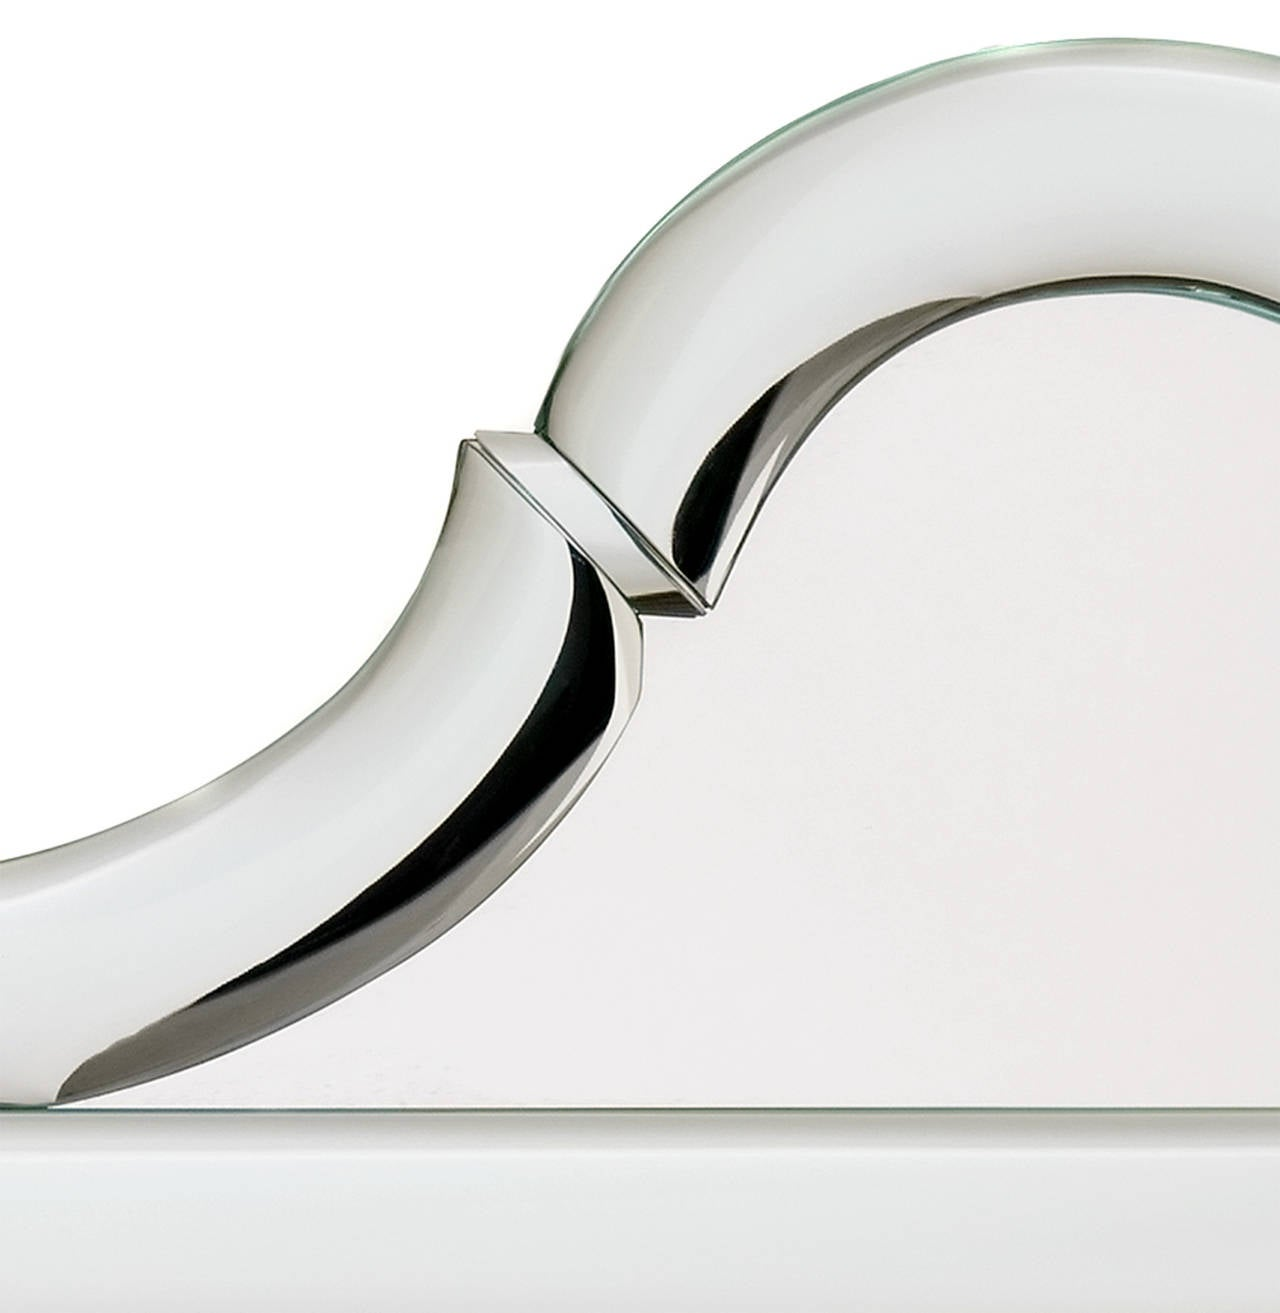 Queen Anne-Shaped-Top Bullnose Mirror 4